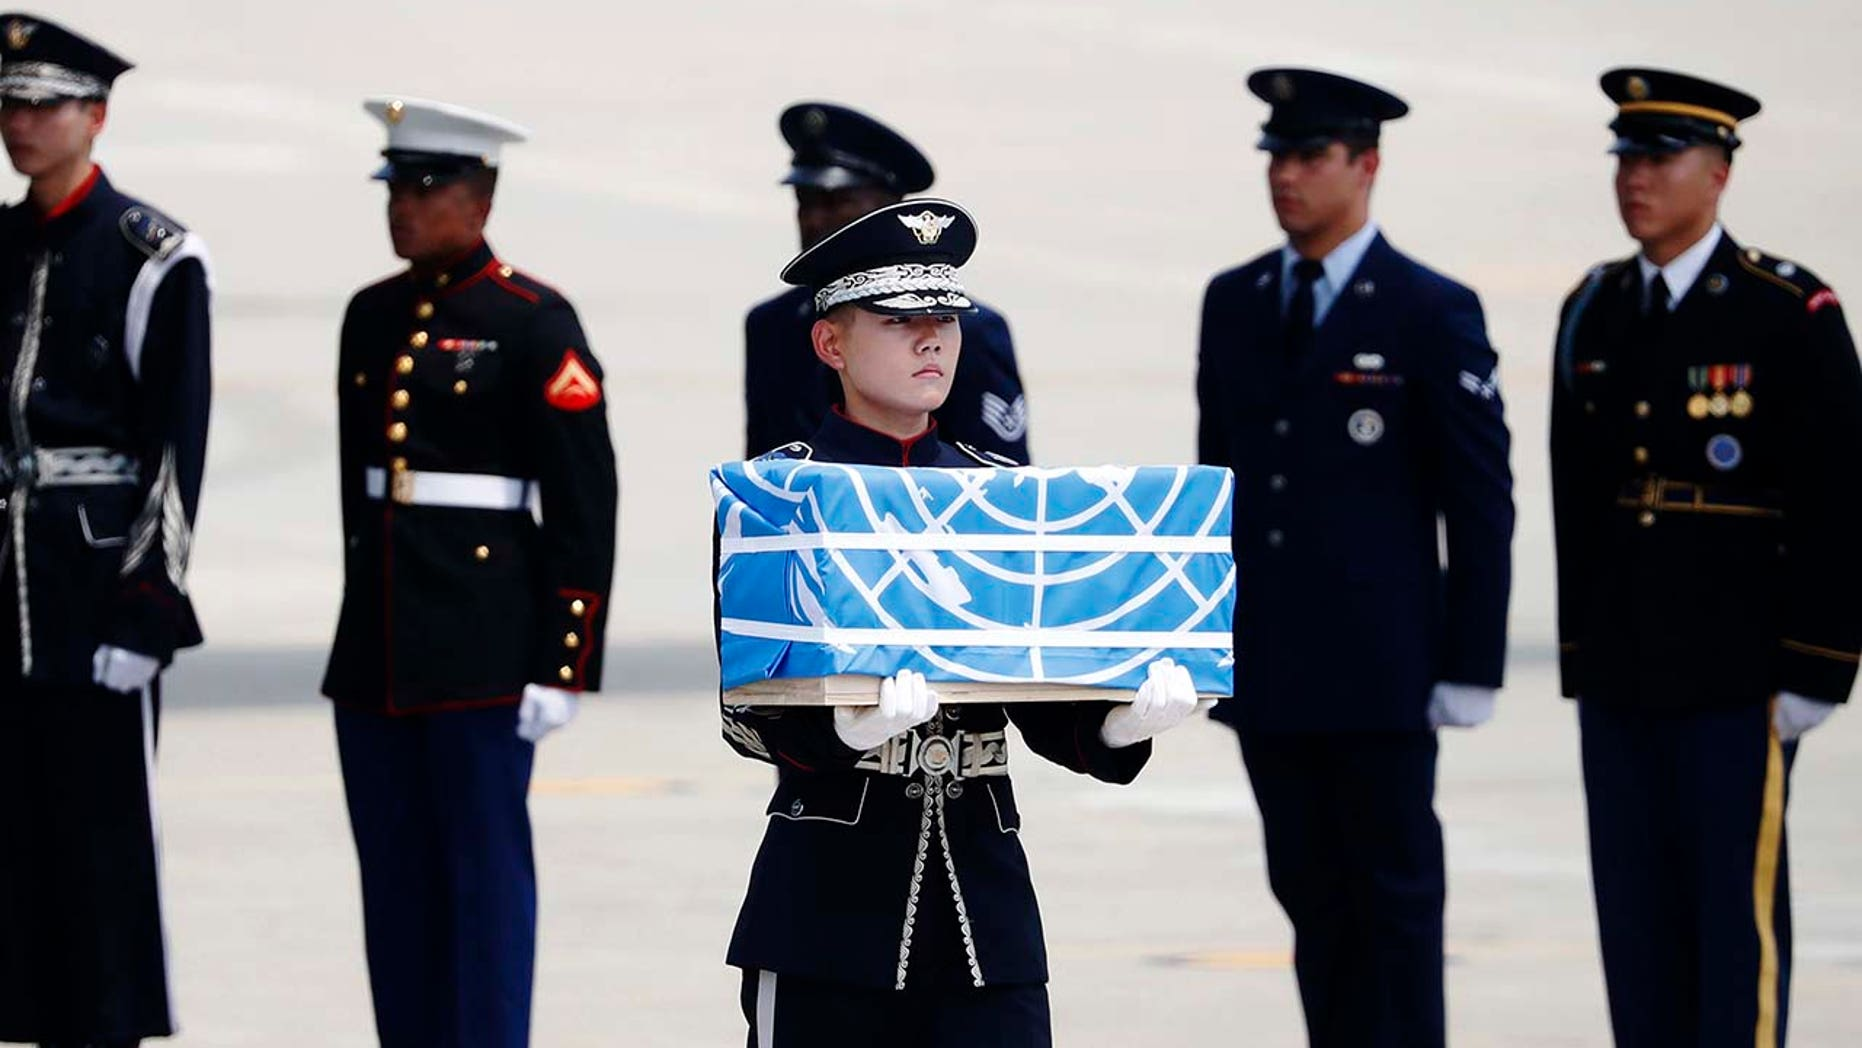 A soldier carries a casket containing what was believed to be the remains of a U.S. soldier who was killed in the Korean War, during a ceremony at Osan Air Base in Pyeongtaek, South Korea, July 27, 2018.